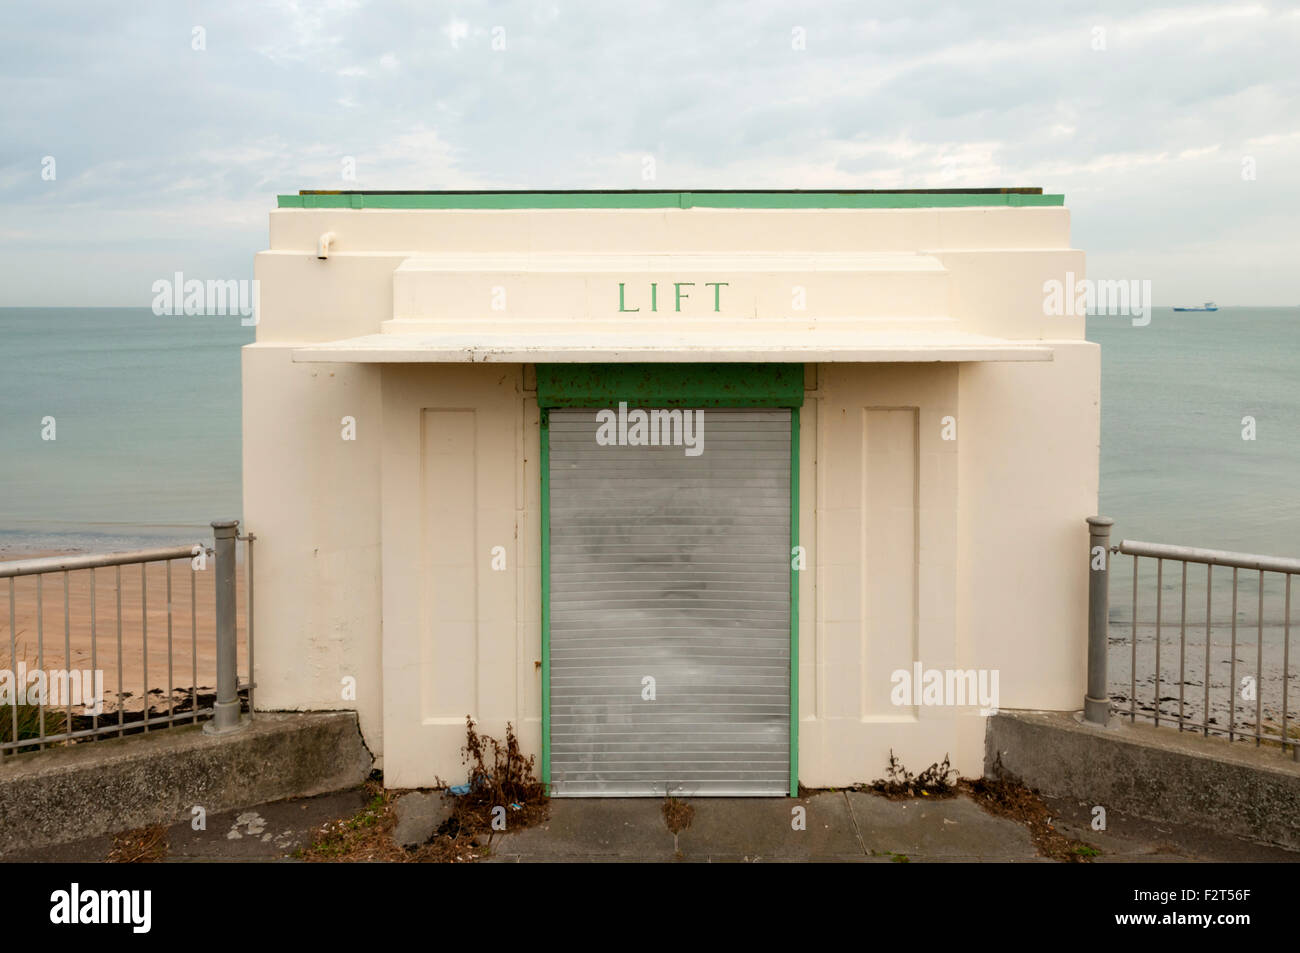 The closed Grade II listed art deco cliff lift in Margate. - Stock Image